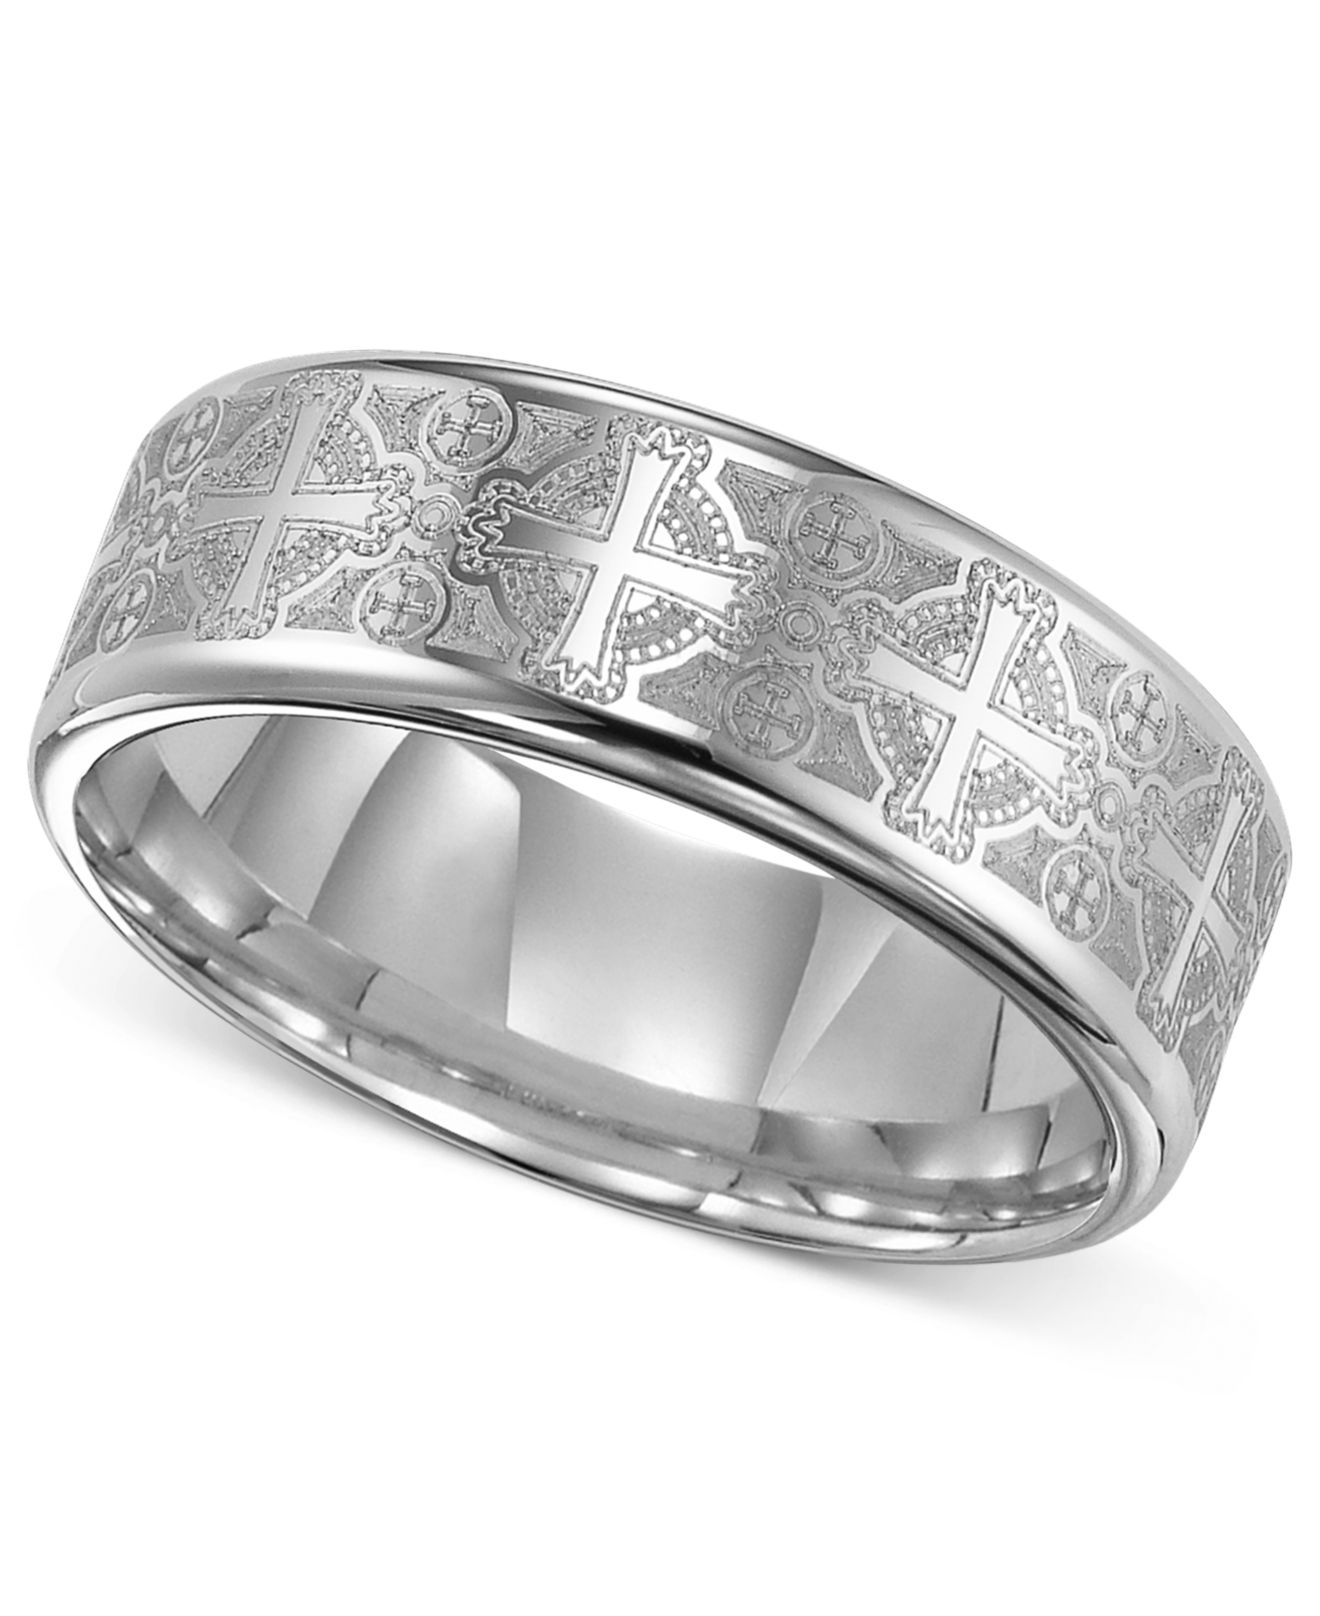 triton men 39 s tungsten carbide ring comfort fit etched cross wedding band in silver for men. Black Bedroom Furniture Sets. Home Design Ideas